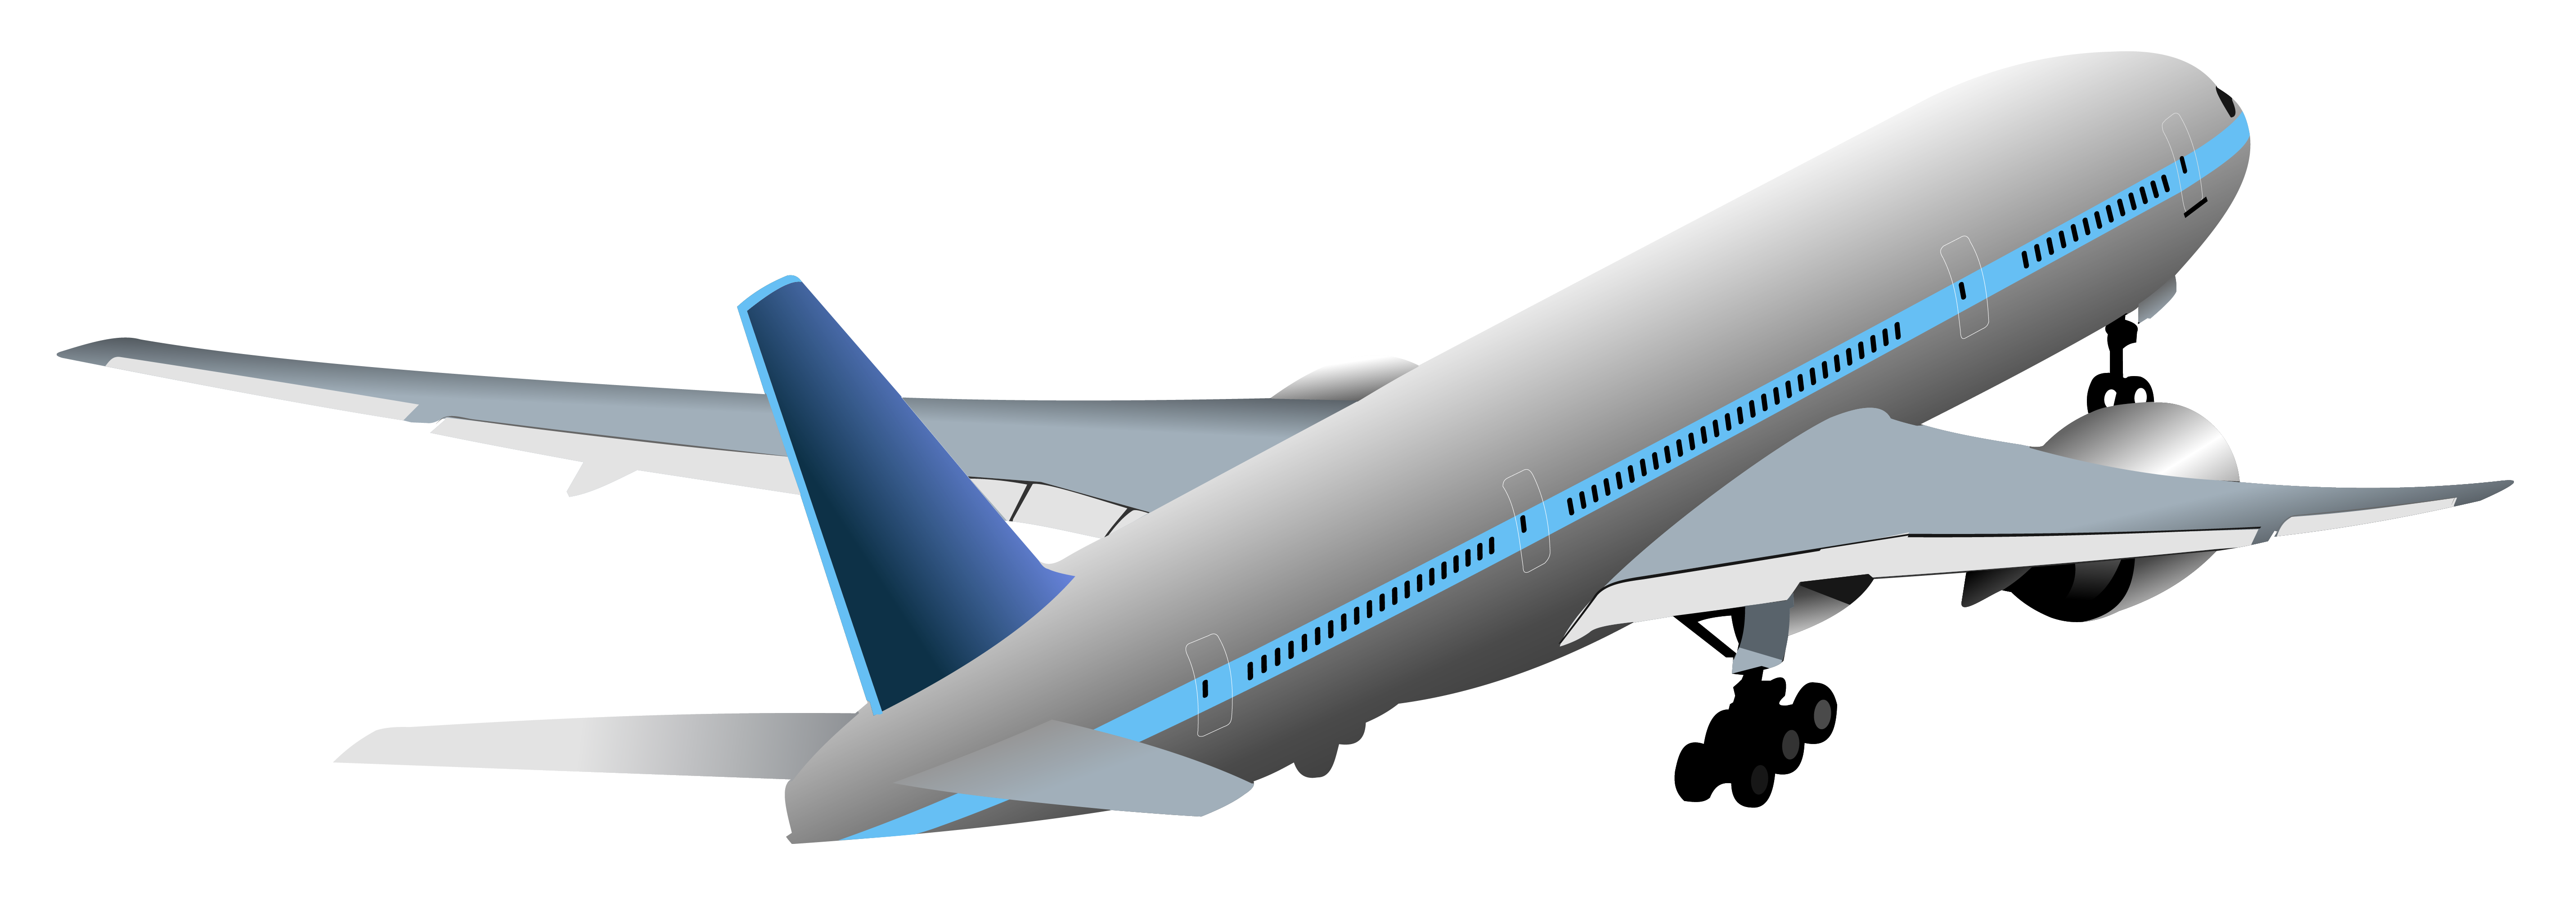 5725x2014 Transparent Aircraft Png Vector Clipartu200b Gallery Yopriceville